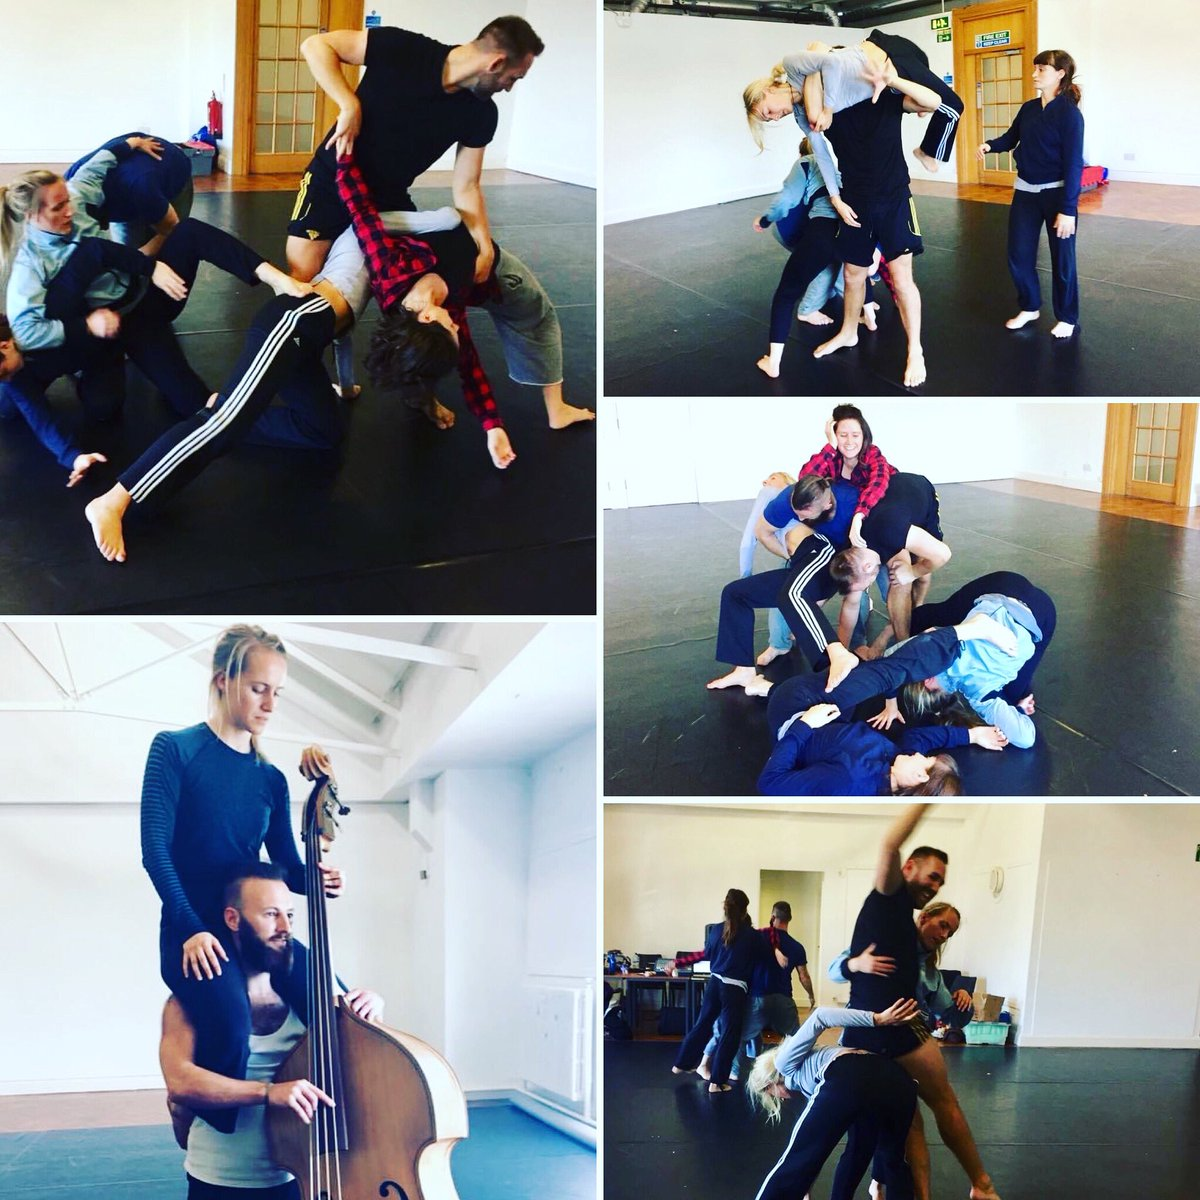 #ThrowbackThursday | Dydd Iau Taflu yn ol to our 'Murmur' rehearsals at @BarryMemo in 2018. Rehearsals look a little different today!...Hopefully we'll be lifting, leaning and tangling in the studio again soon!  #contemporarydance #rehearsals #contactimprovisation #Murmurpremiere